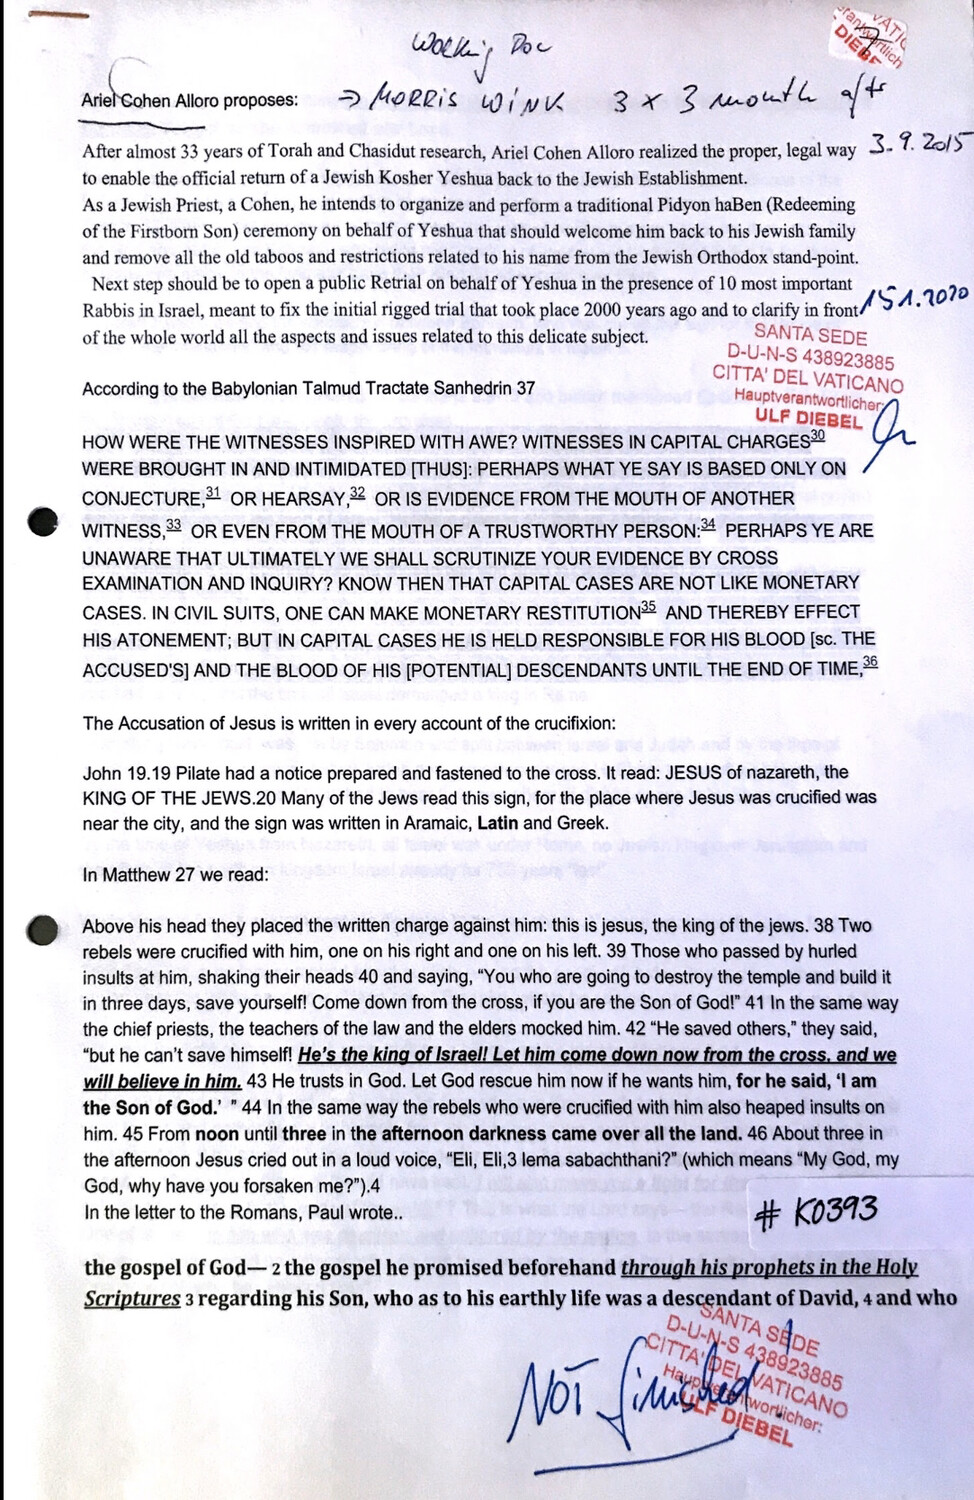 #K0393 l Article about the realisation of the proper, legal way to enable the official return of a Jewish Kosher Yeshua back to the Jewish Establishment - Not finished!